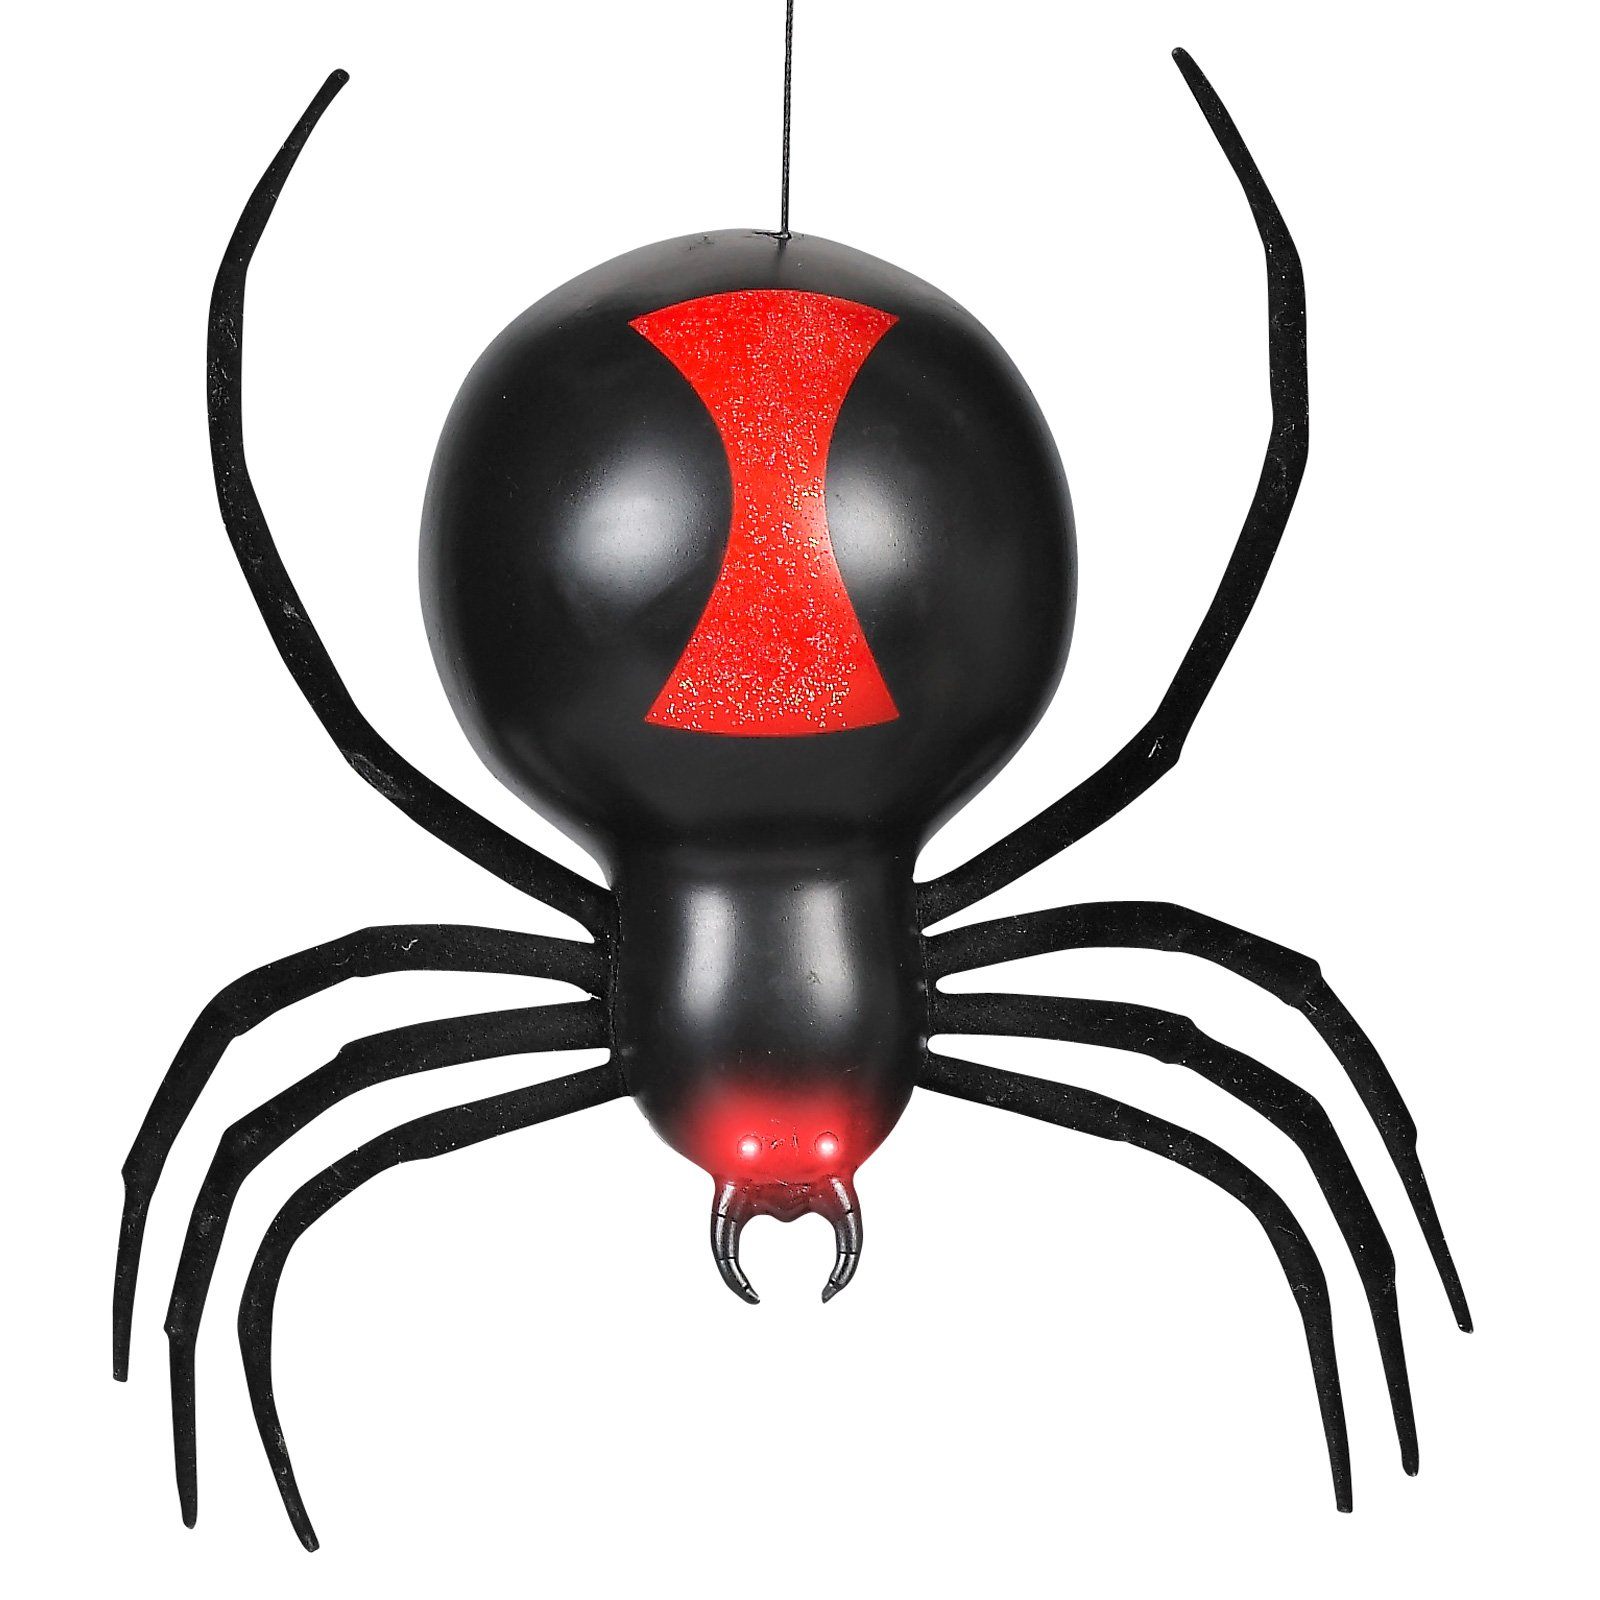 $16.16 Dropping Black Widow Spider Animated Prop at CostumesHut